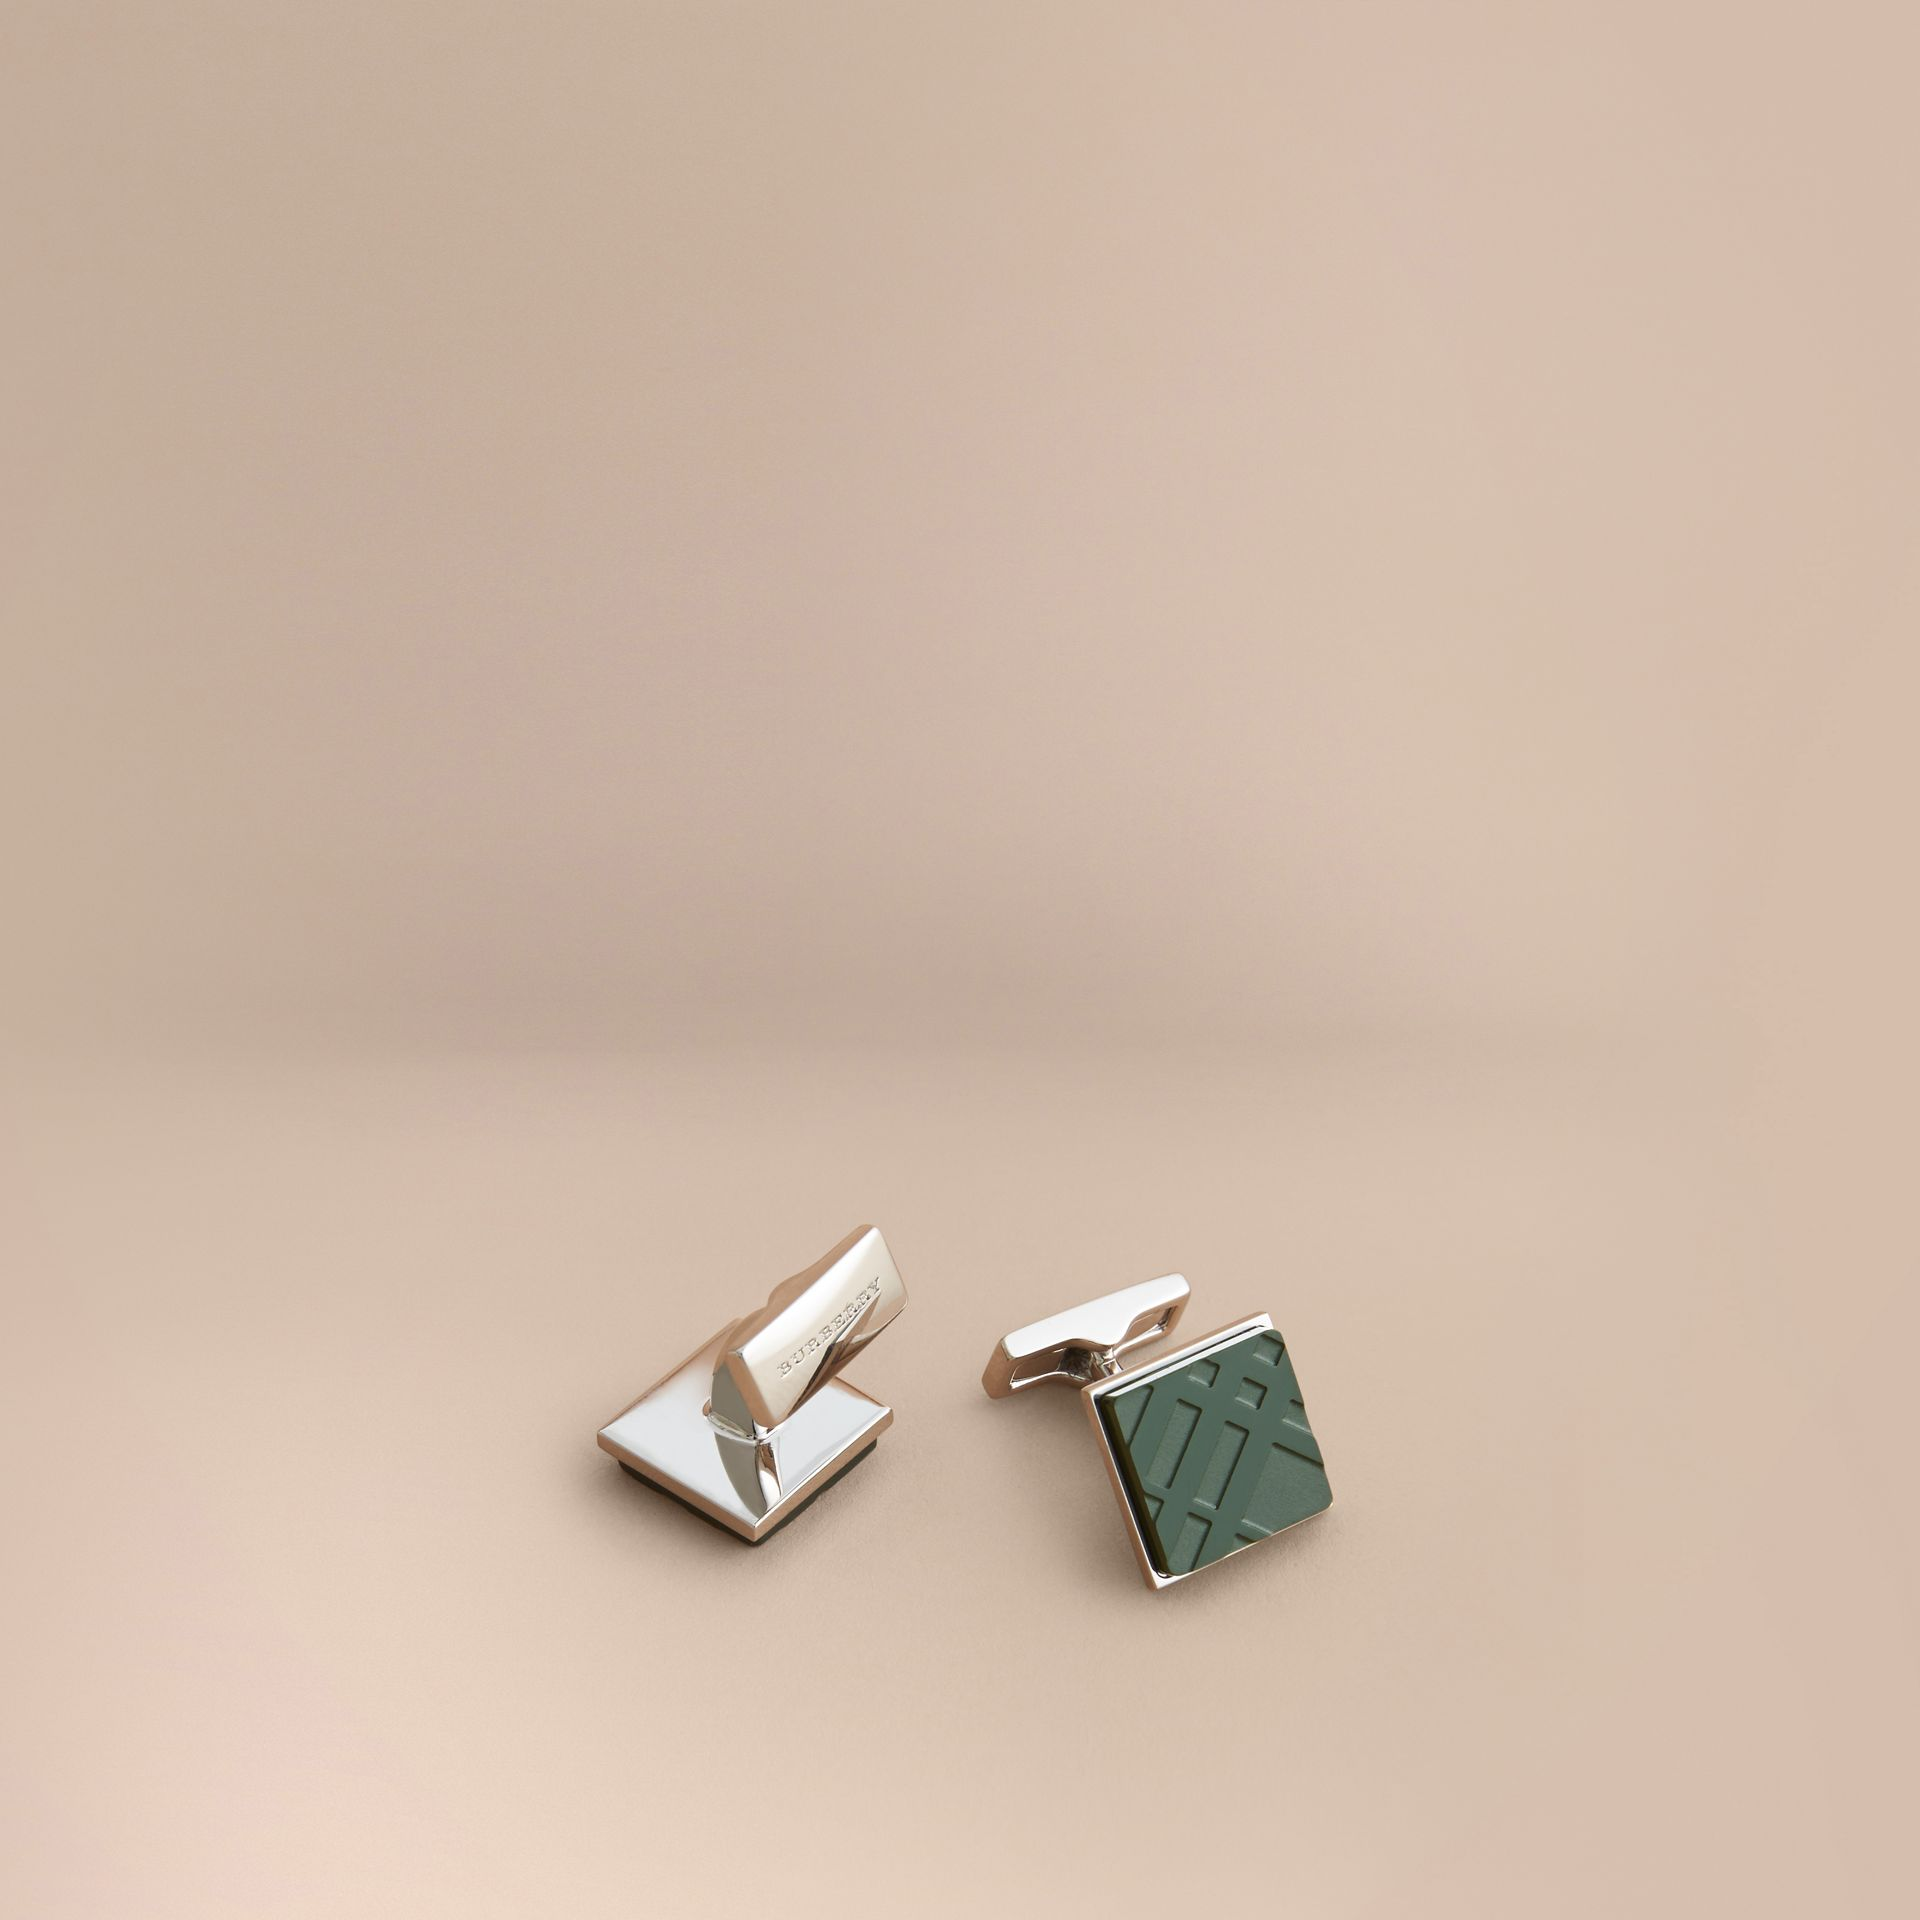 Check-engraved Square Cufflinks in Dark Teal - Men | Burberry - gallery image 1